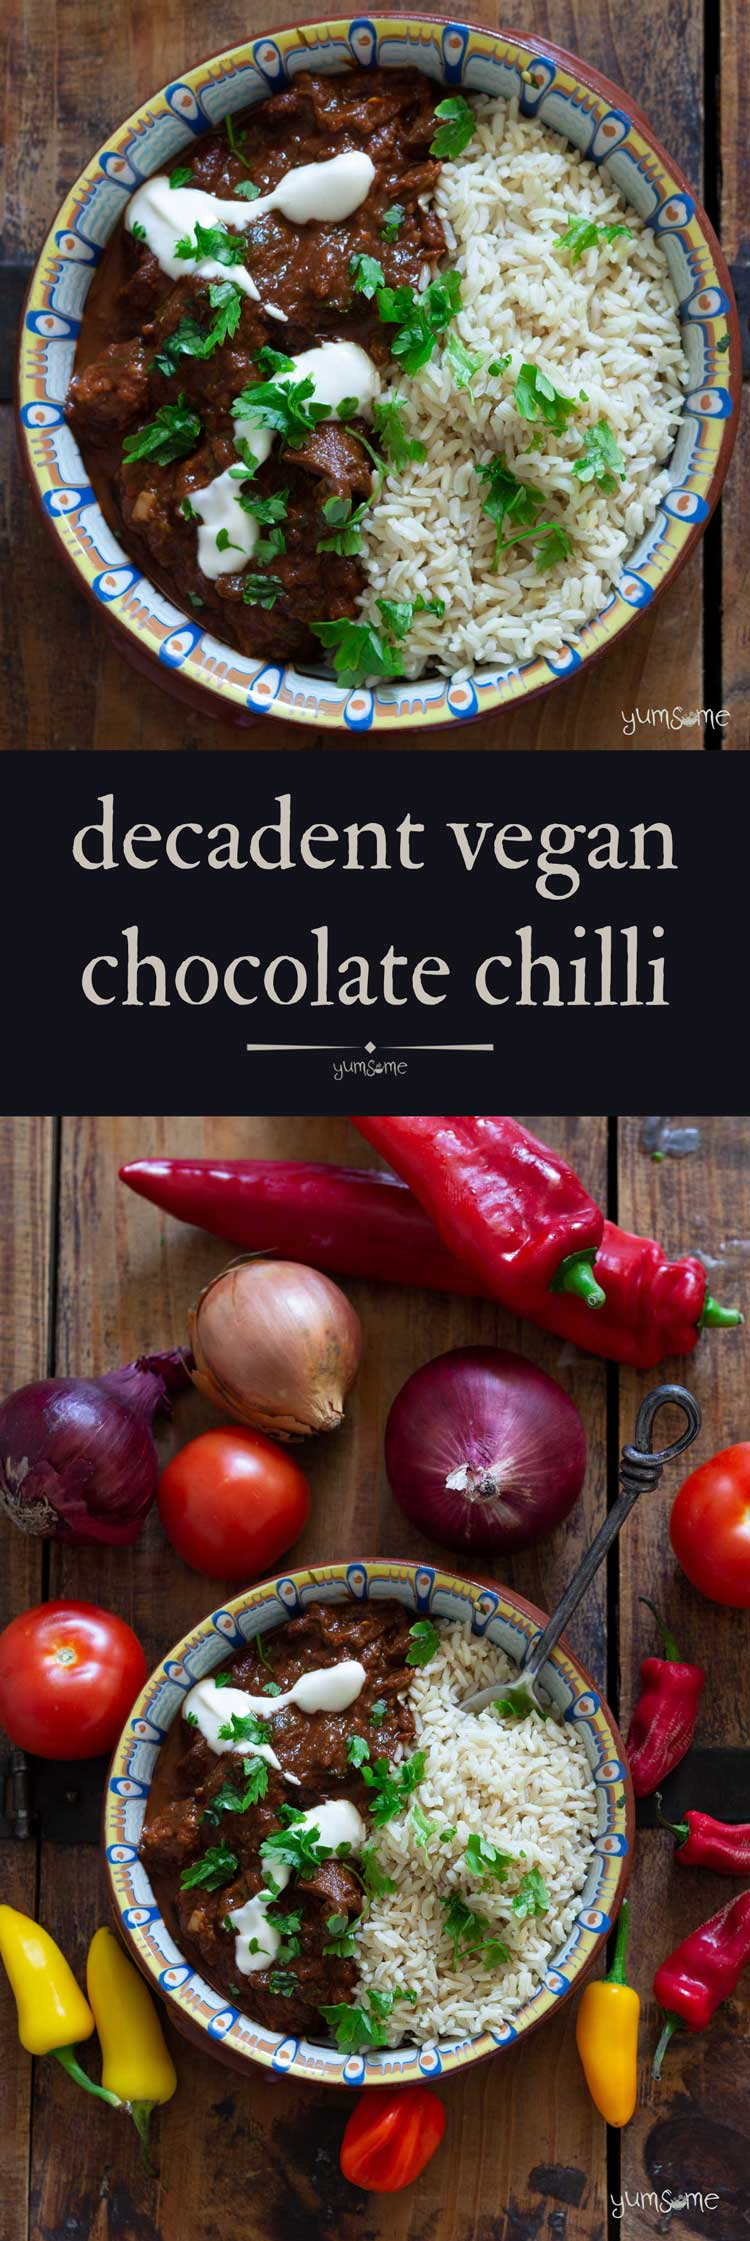 Decadent Vegan Chocolate Chilli